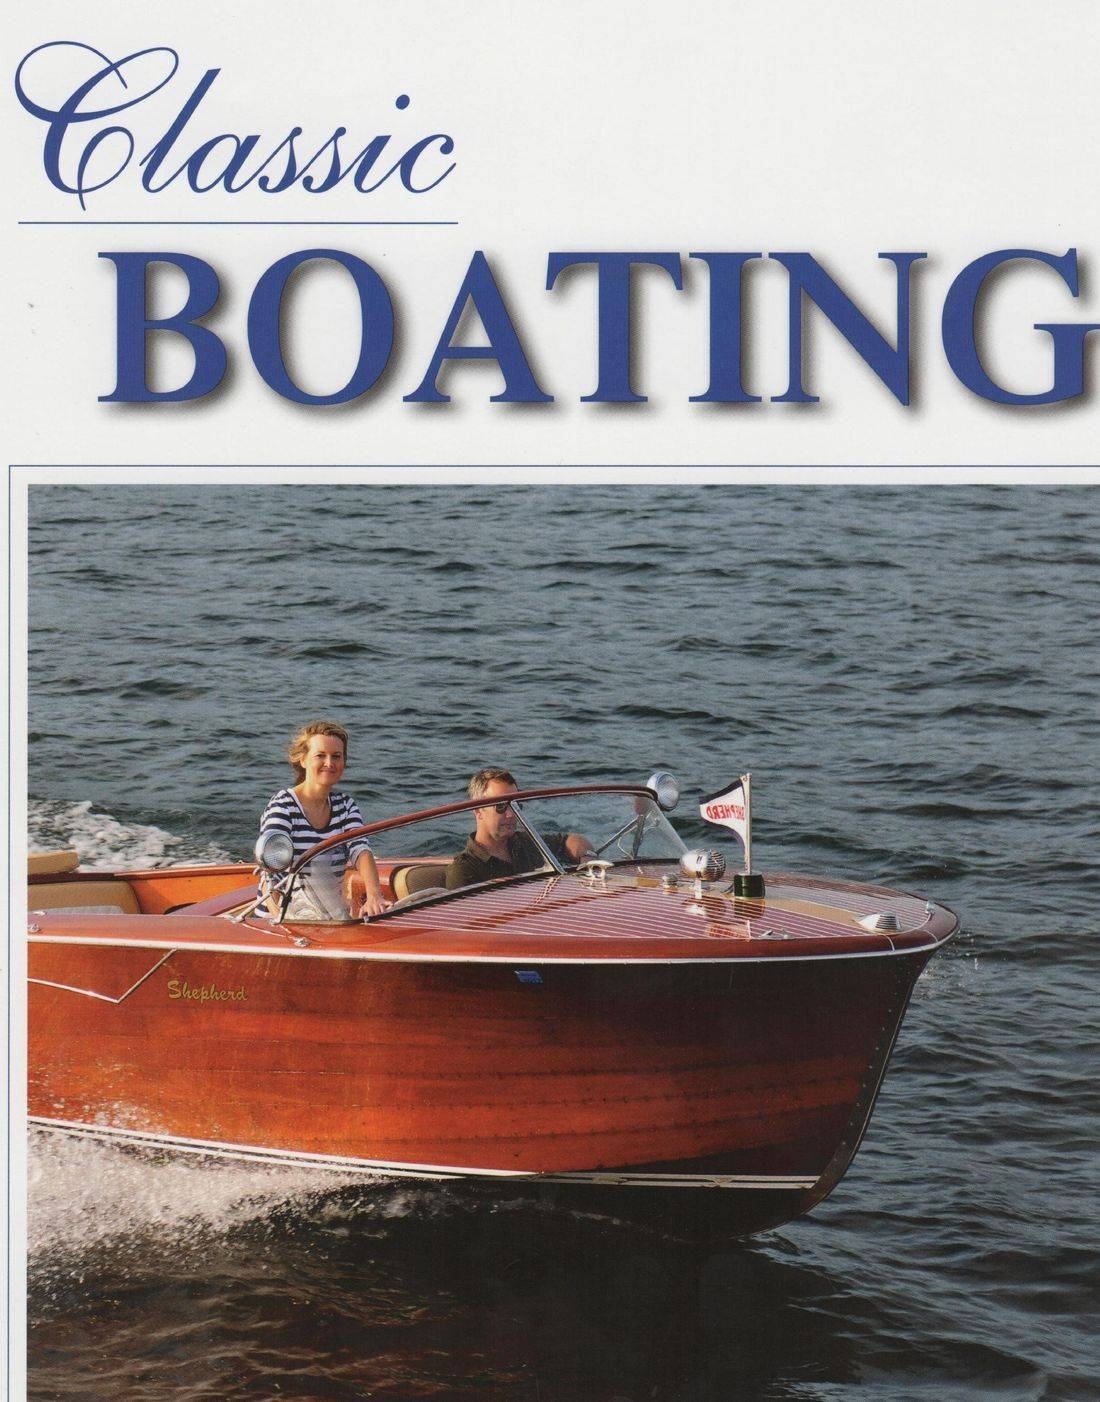 Bergersen Boat Co.  on Classic Boating Cover